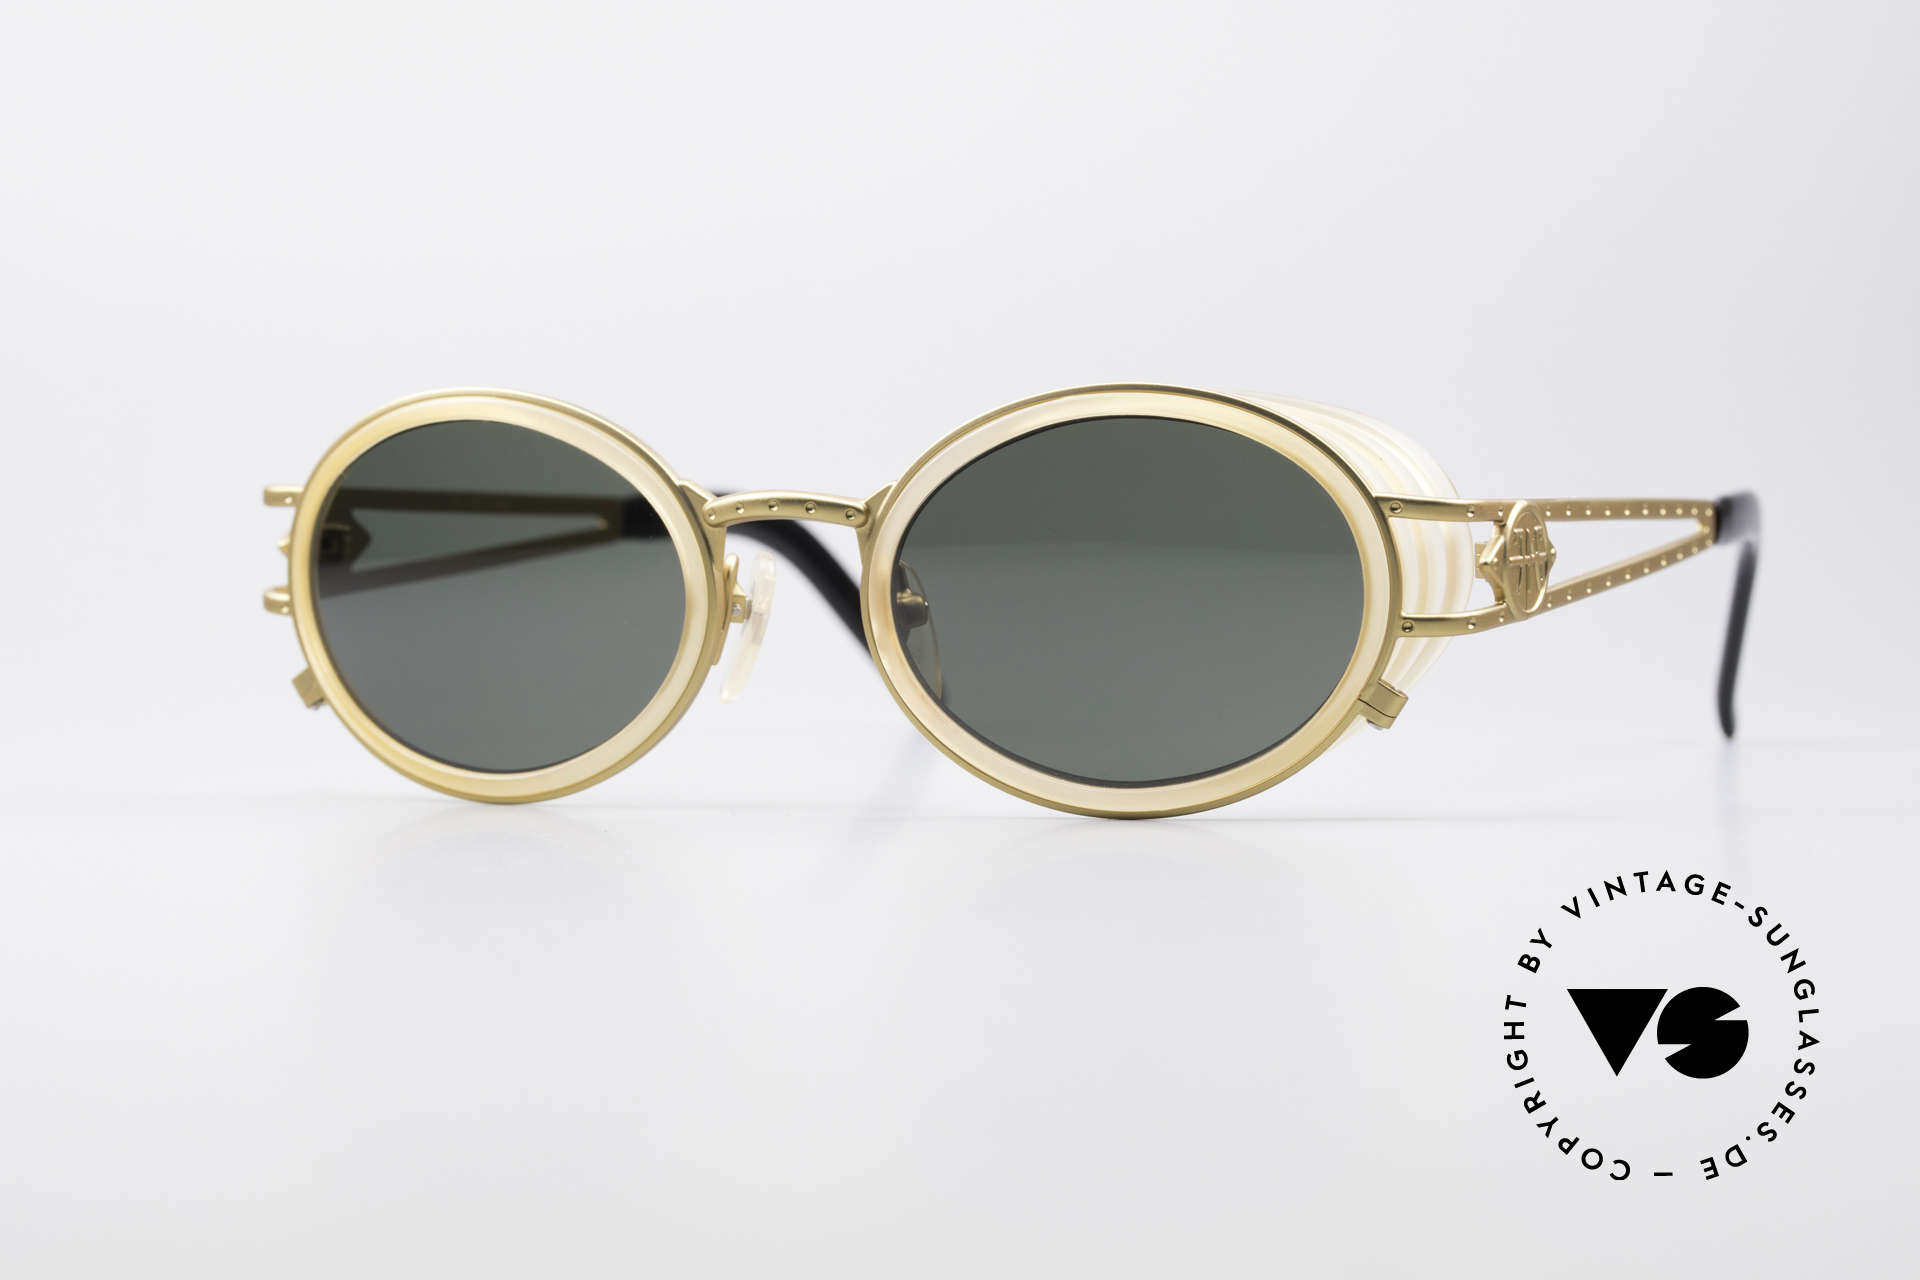 Jean Paul Gaultier 58-6202 Side Shields Sunglasses, outstanding designer shades by Jean Paul GAULTIER, Made for Men and Women